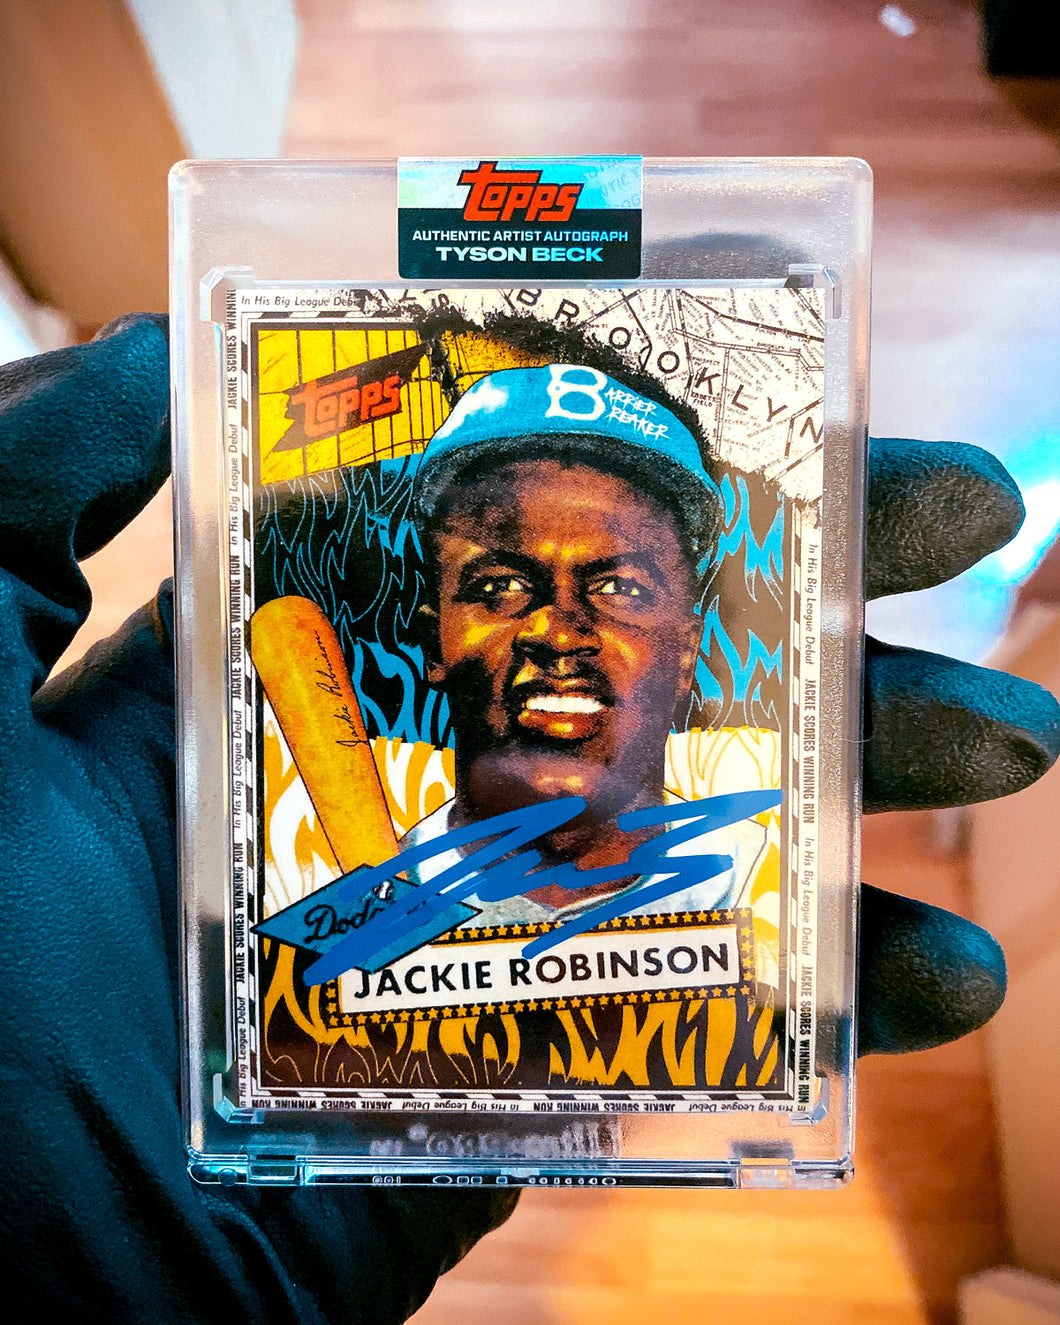 Jackie Robinson by Tyson Beck - DODGER BLUE AUTOGRAPH - LIMITED TO 42